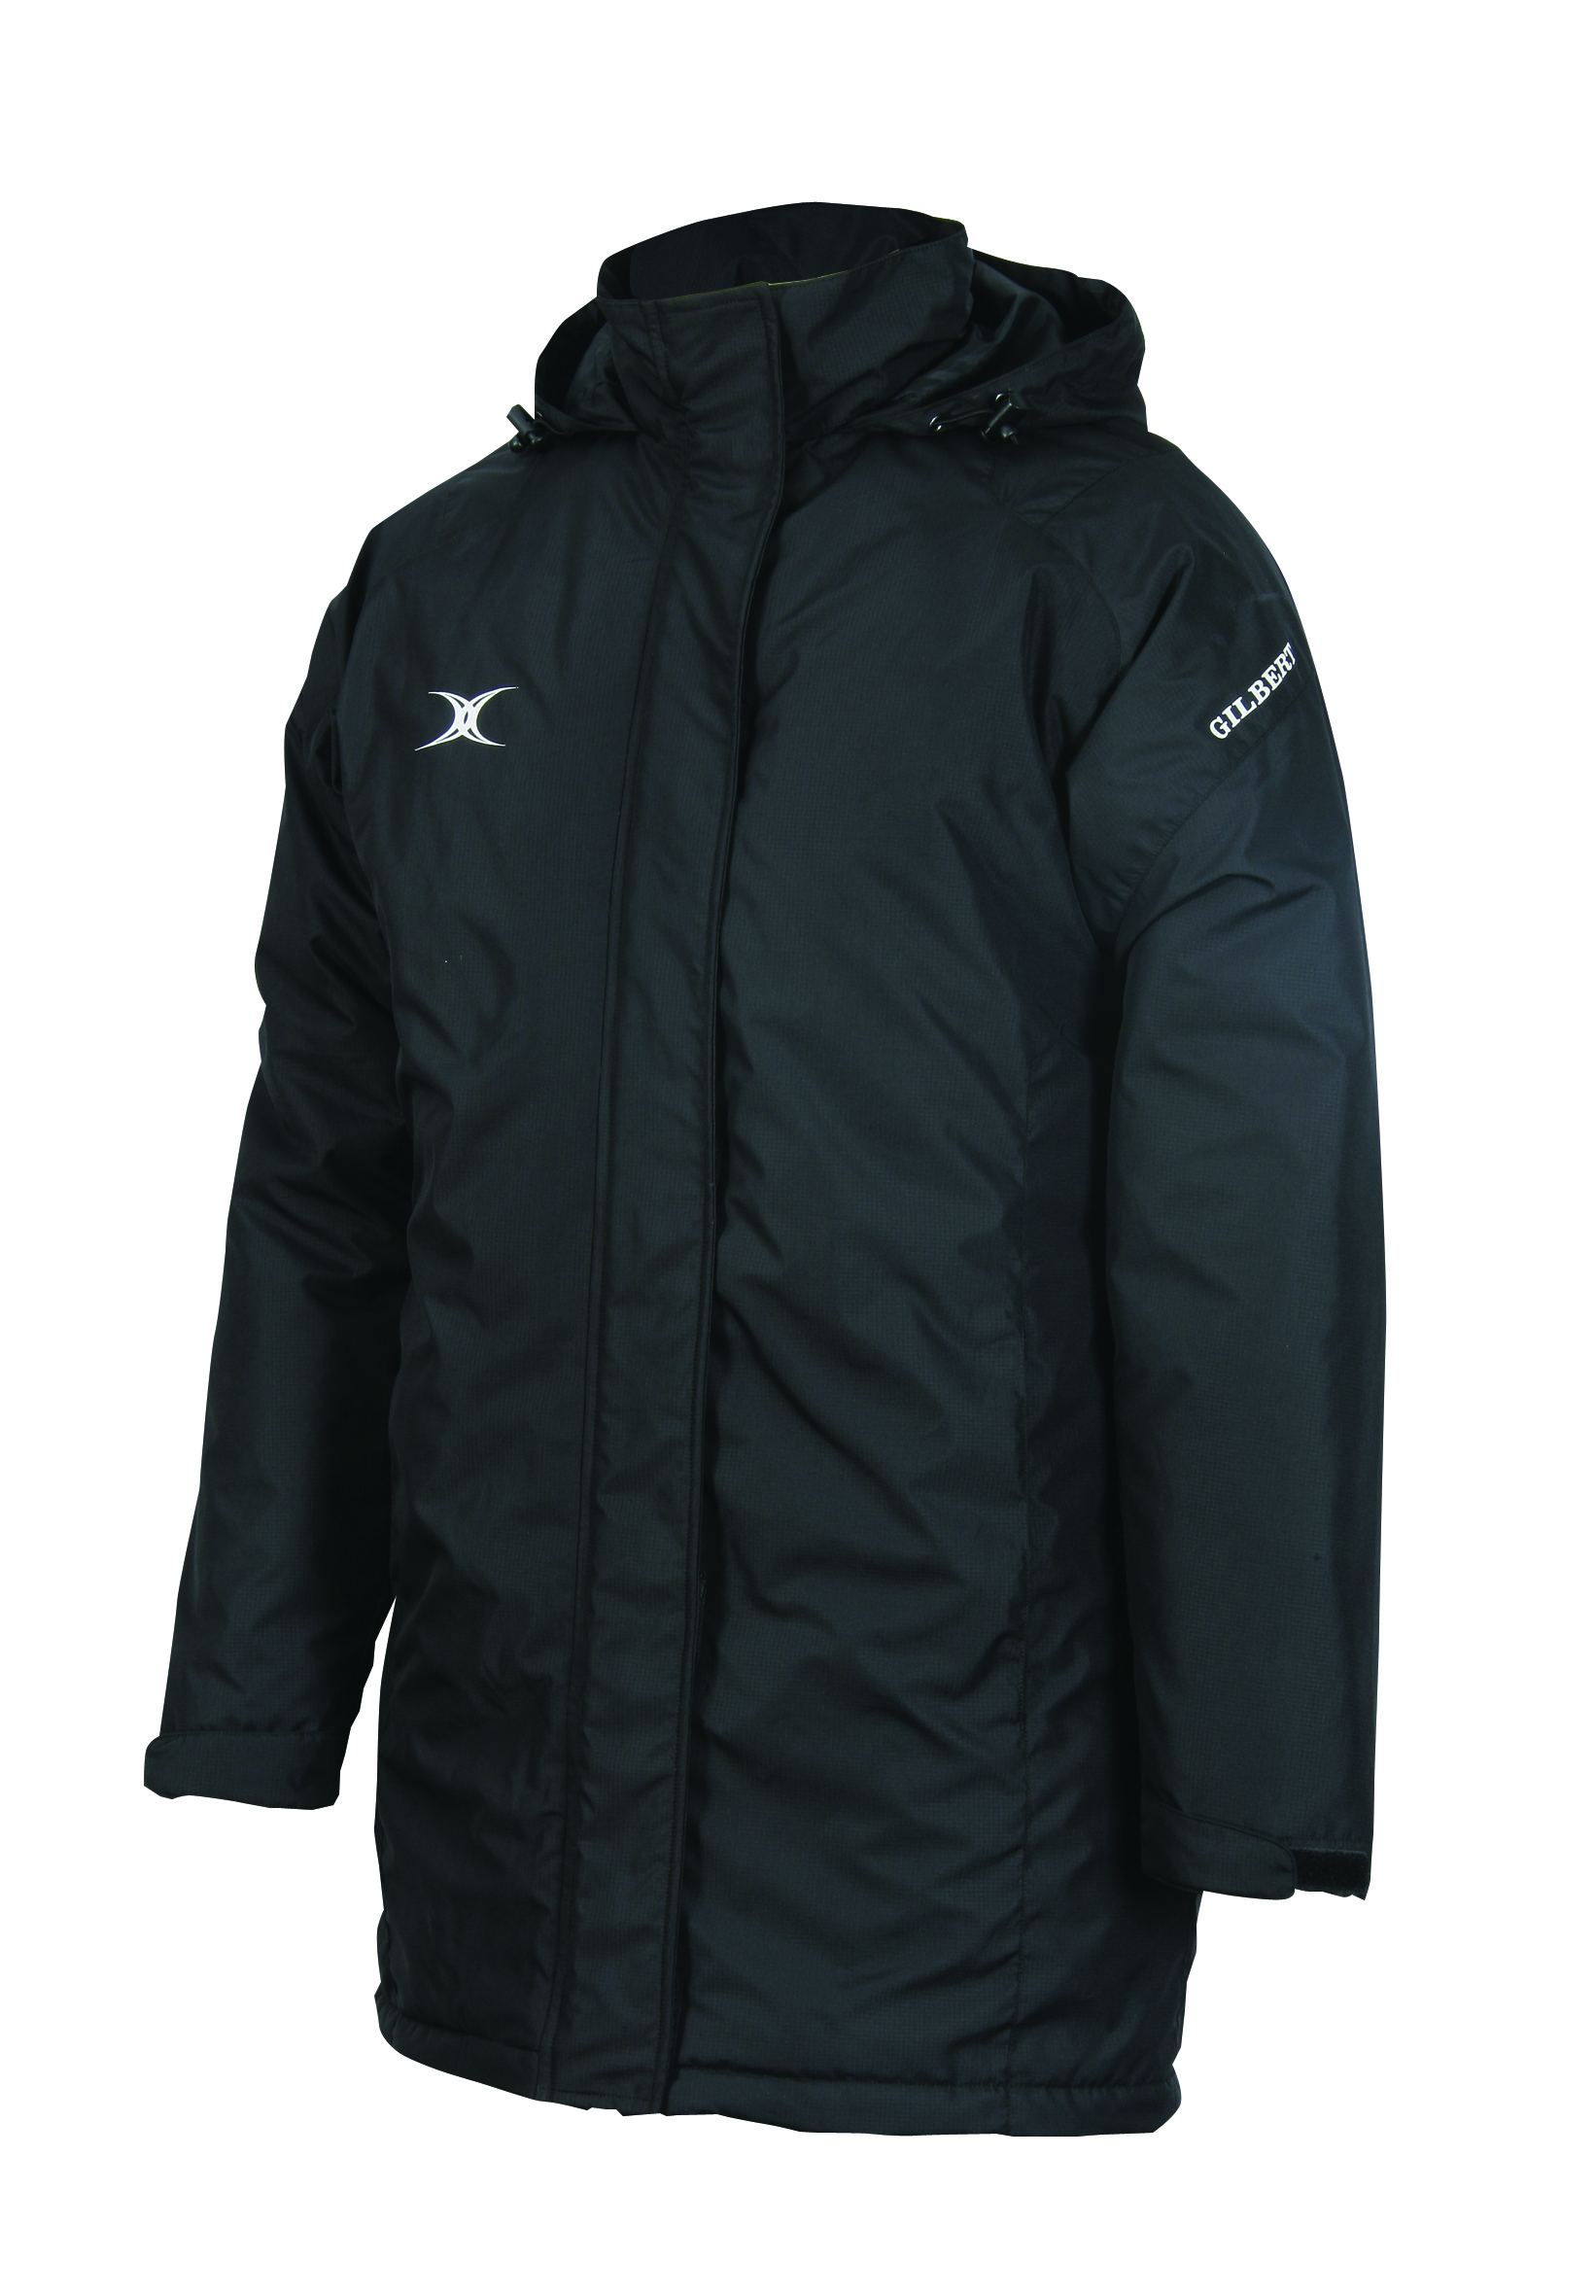 Evolution Jacket Black